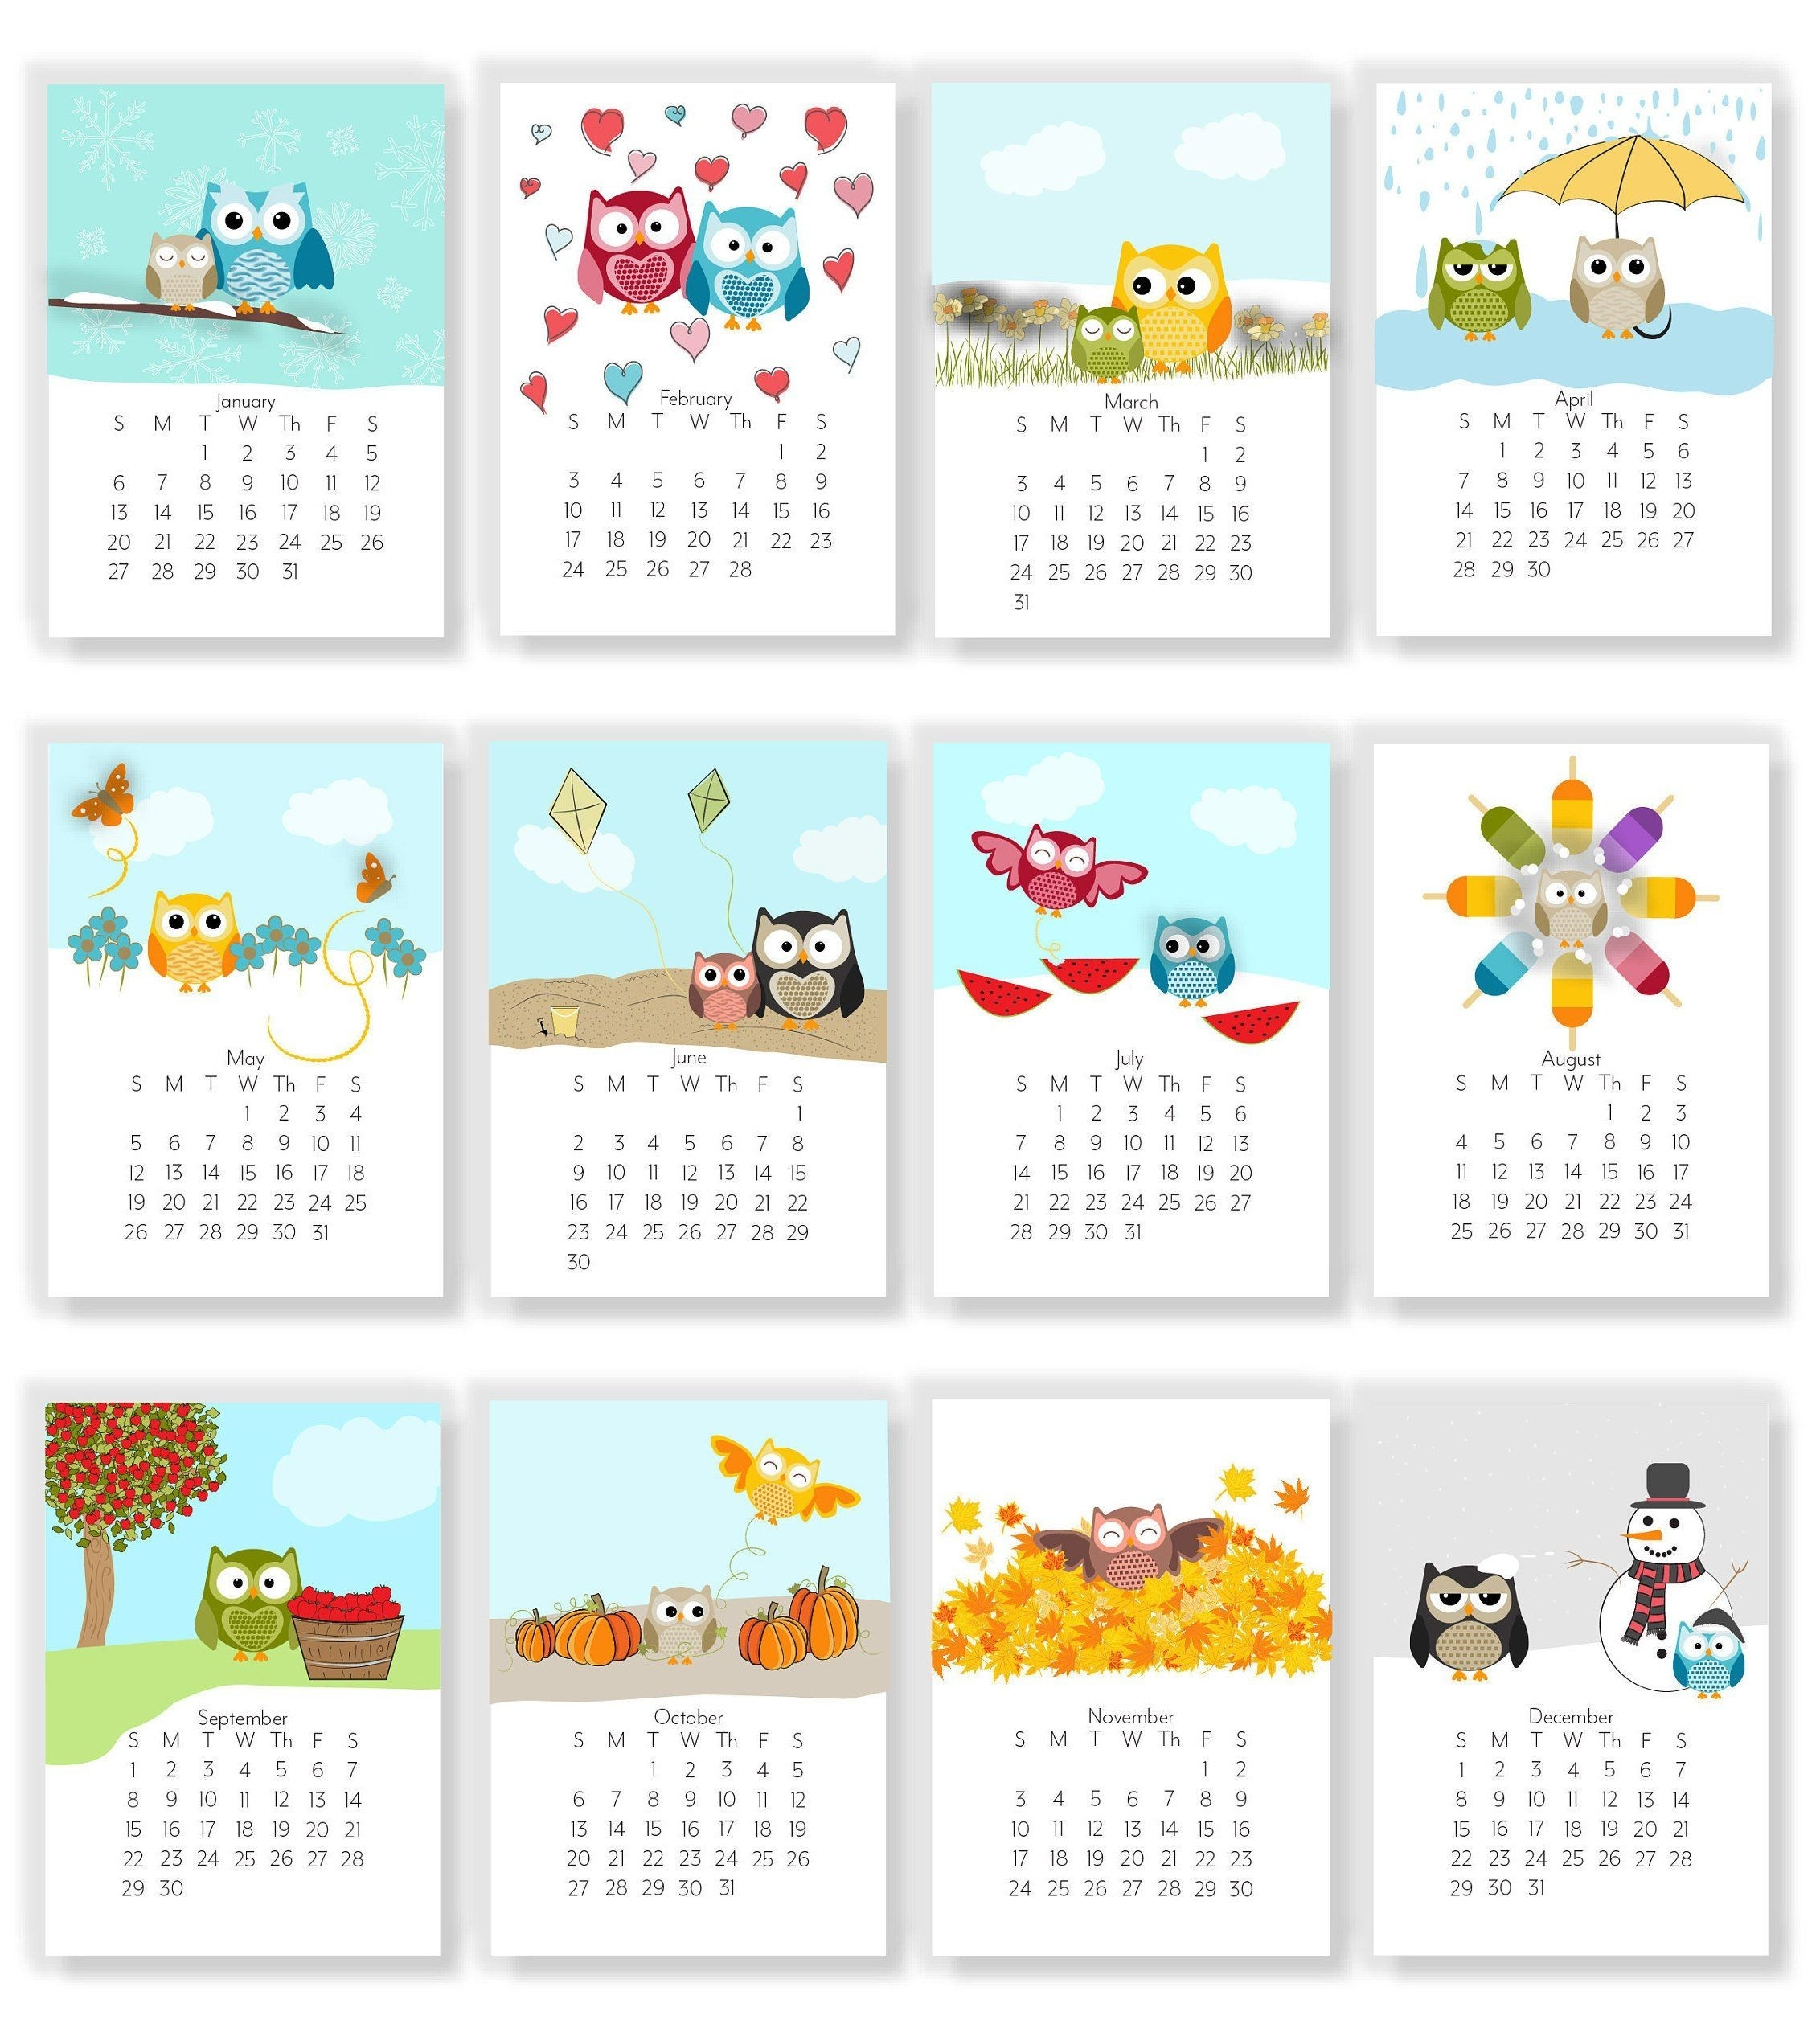 2021 Adorable Owl Monthly Calendars Instant Download | Etsy-4X6 Printable Calendar 2021 Free